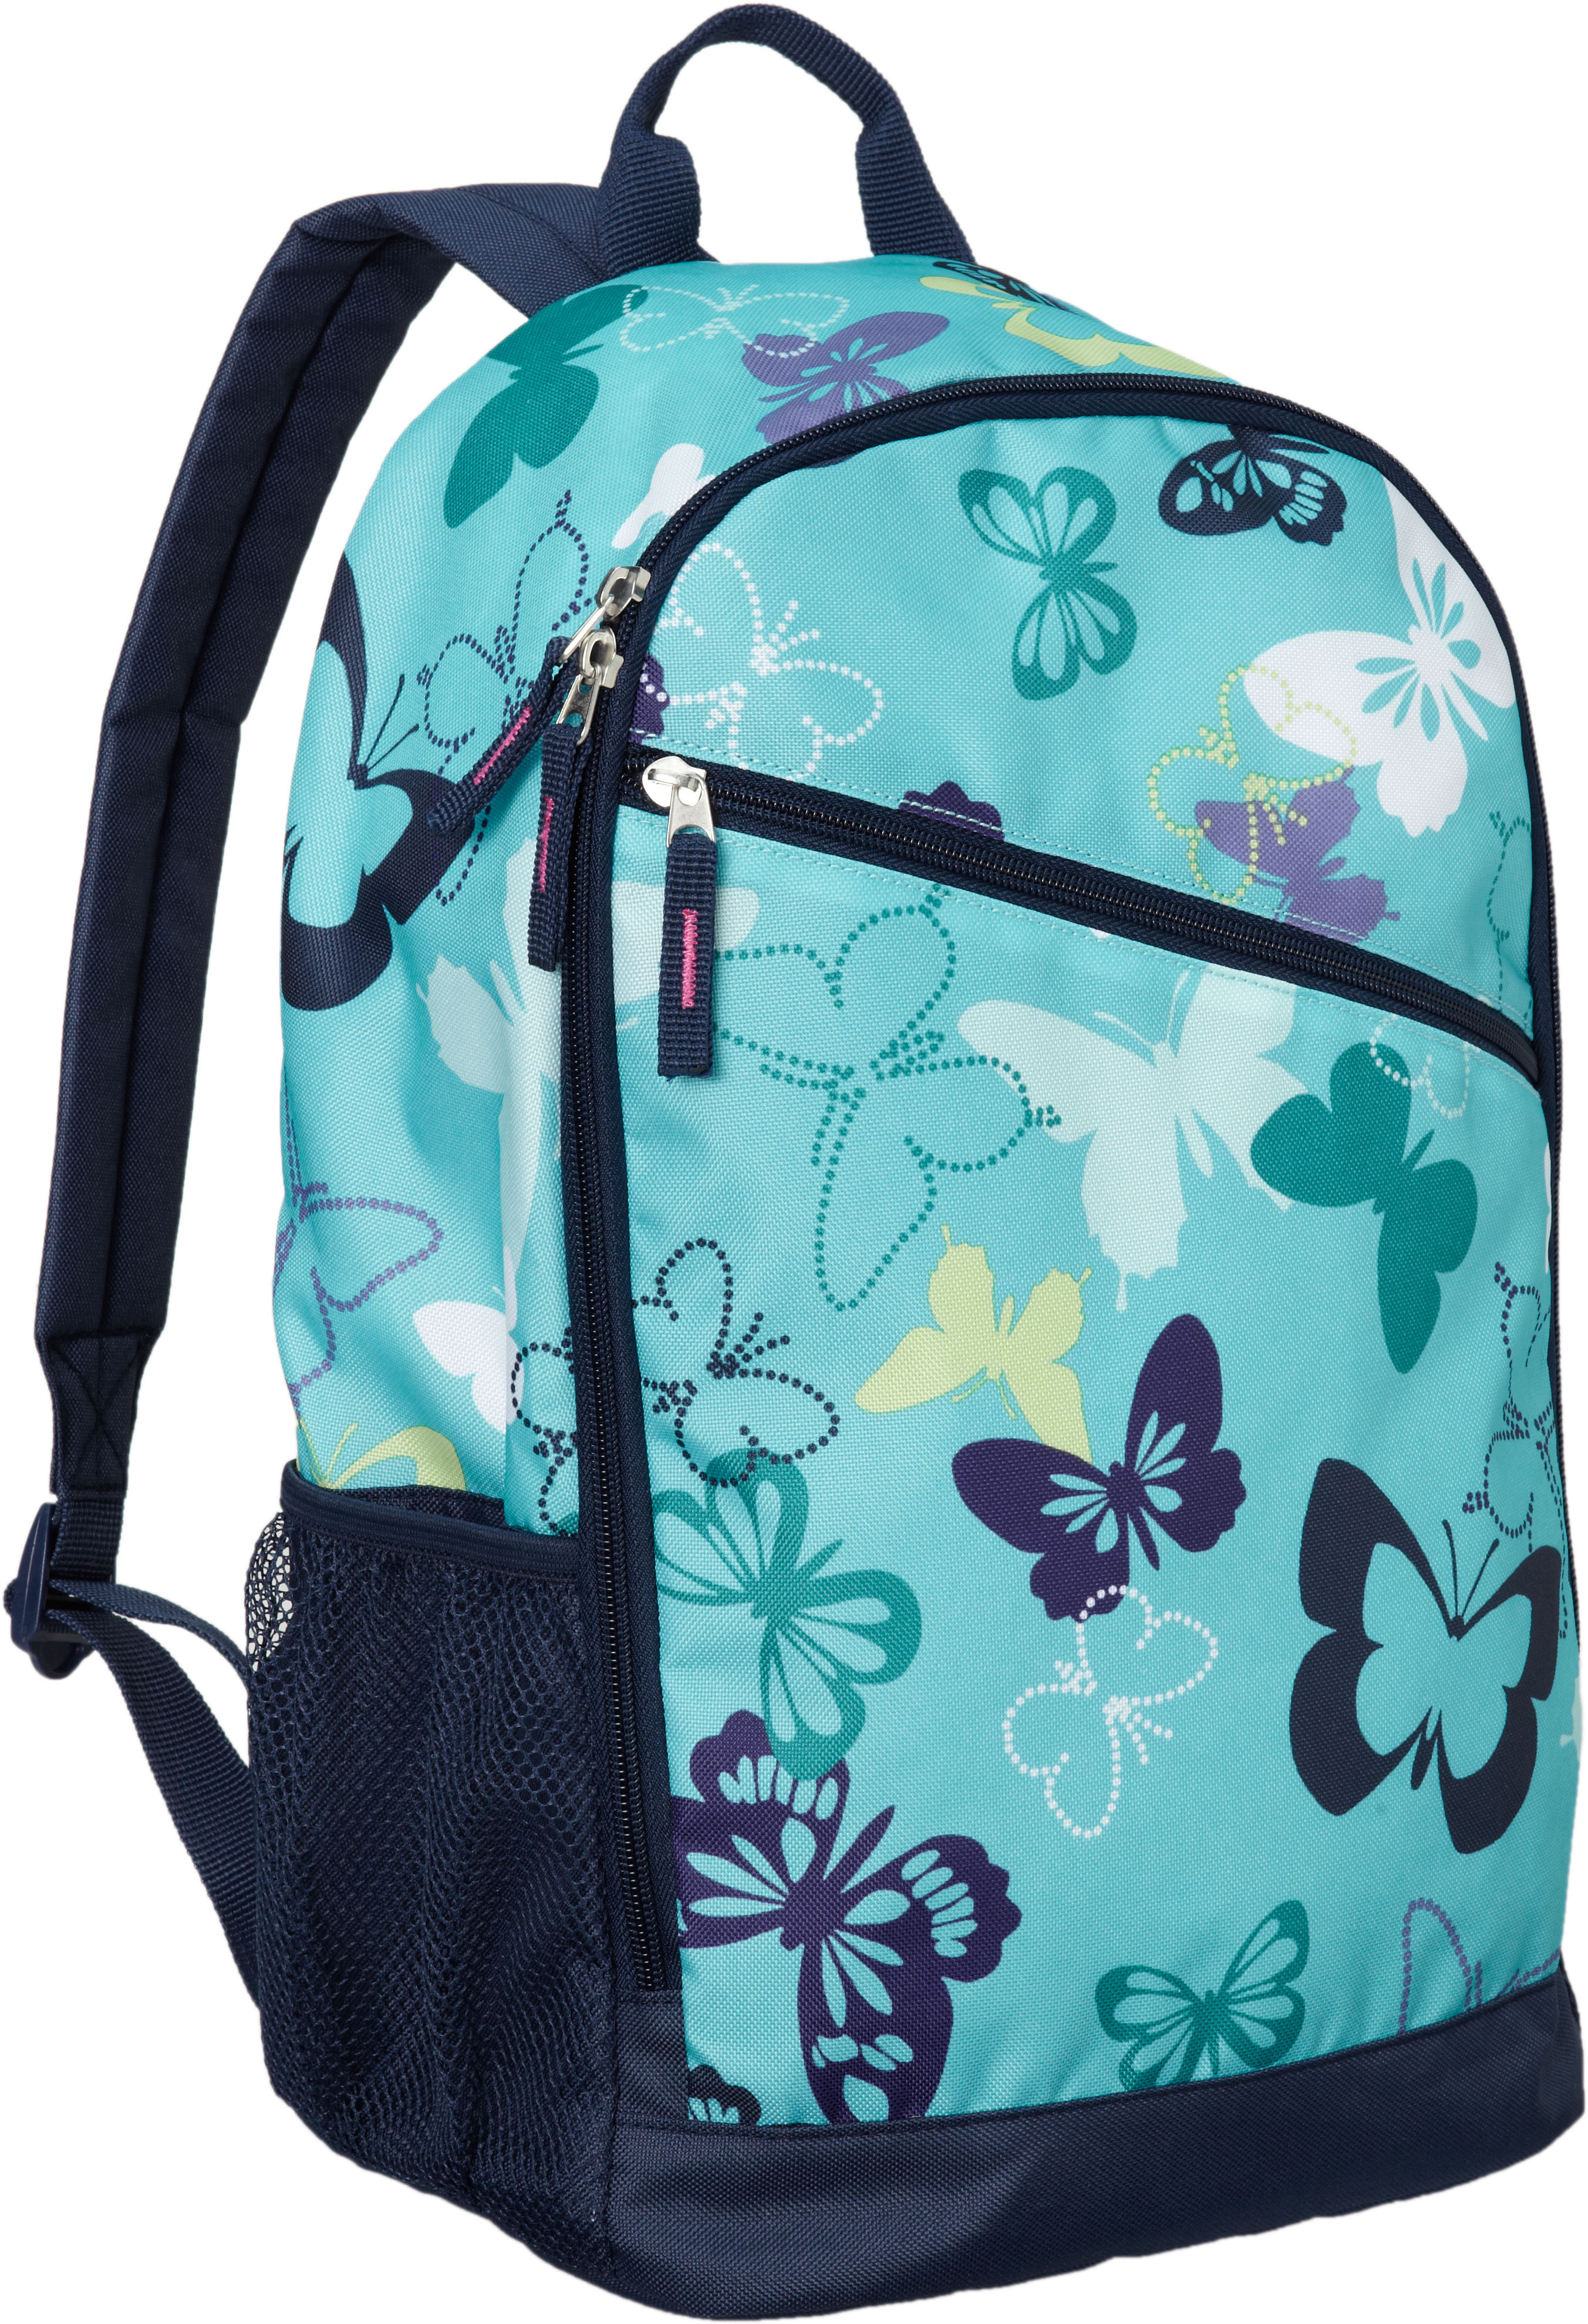 Blue Backpacks For Girls vGCXlva3